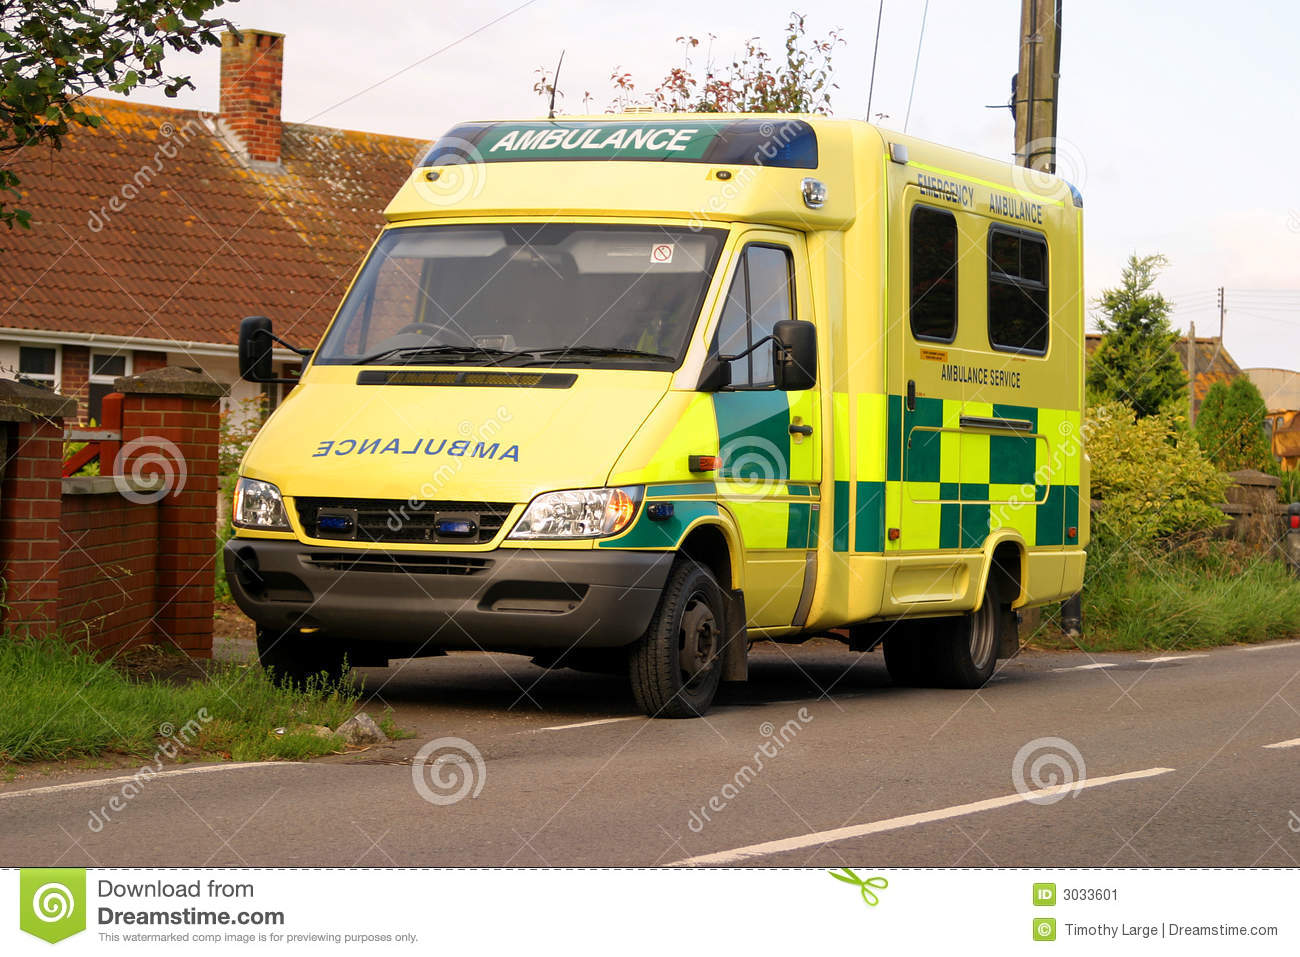 Bright yellow British Ambulance parked beside the road.